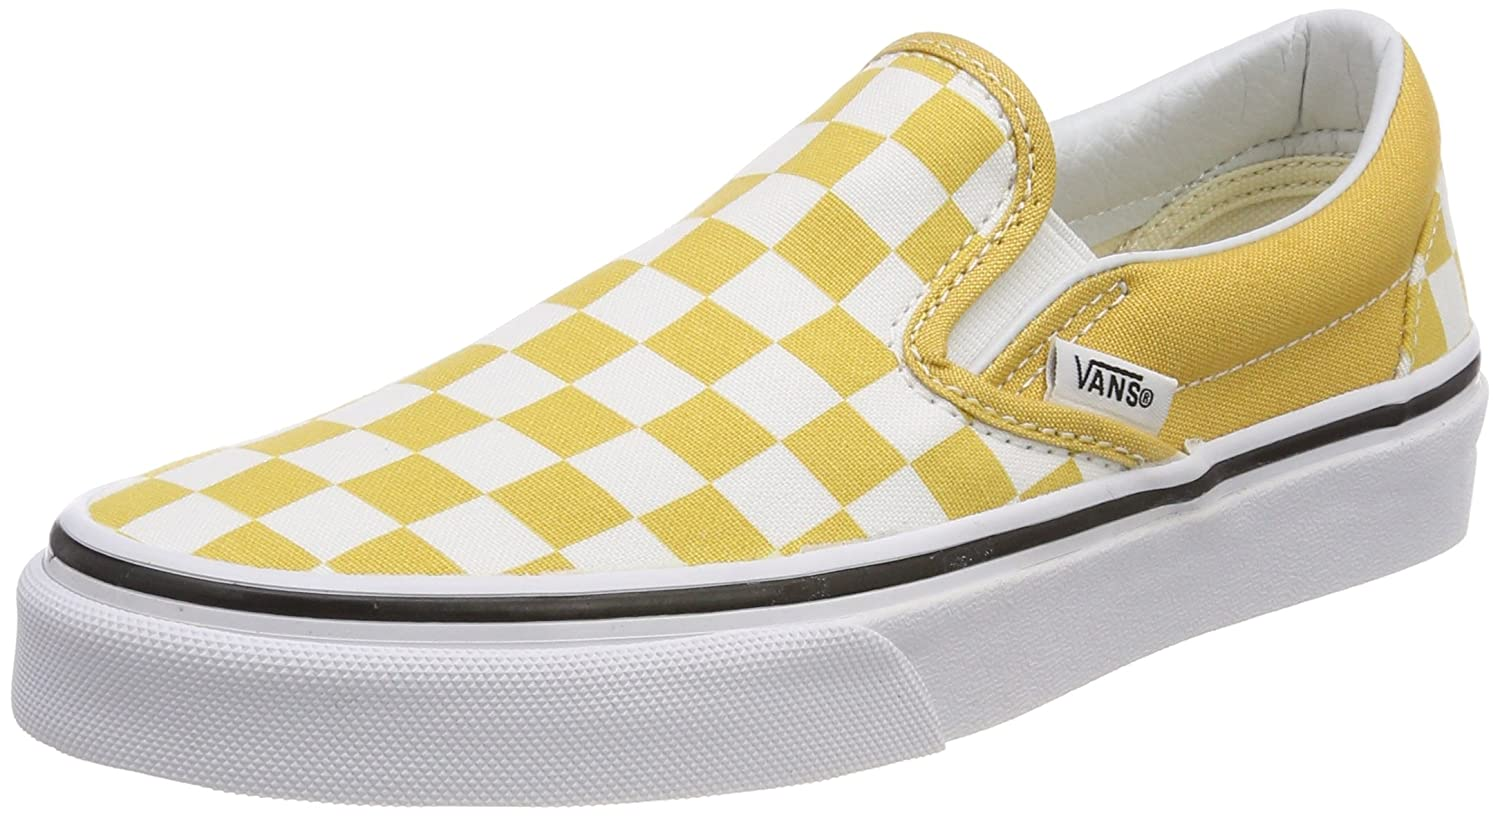 Vans Unisex Classic Slip-On (Perf Leather) Skate Shoe B074HFQ9K3 10.5 UK|(Checkerboard) Ochre/True White